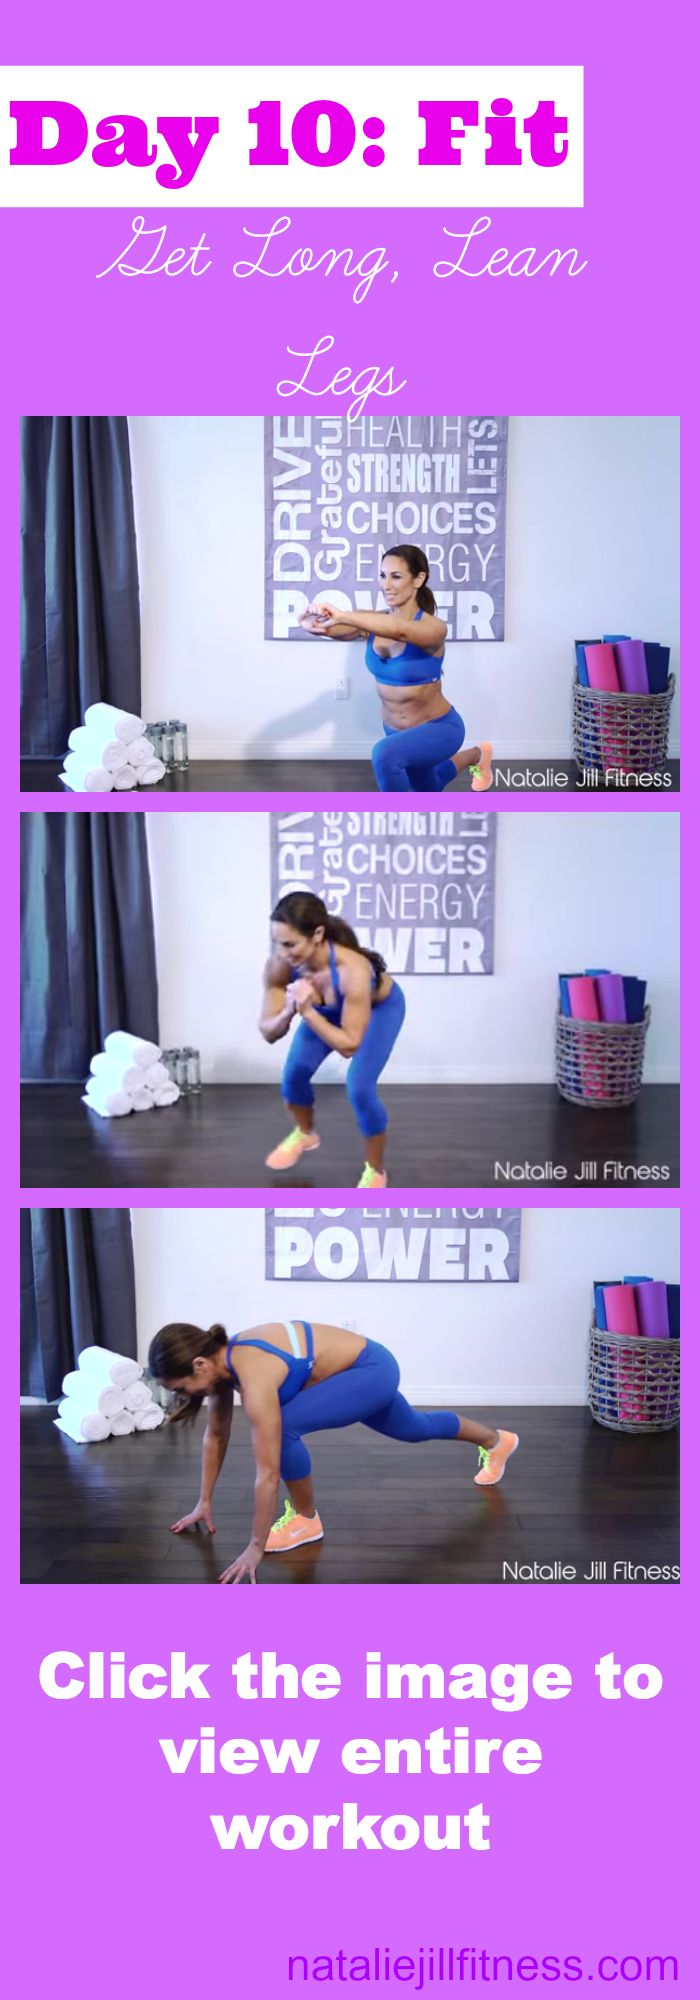 Here you go! WHO is still in? Today's workout: How to tone and lean out your legs! Click the image to view the ENTIRE workout.